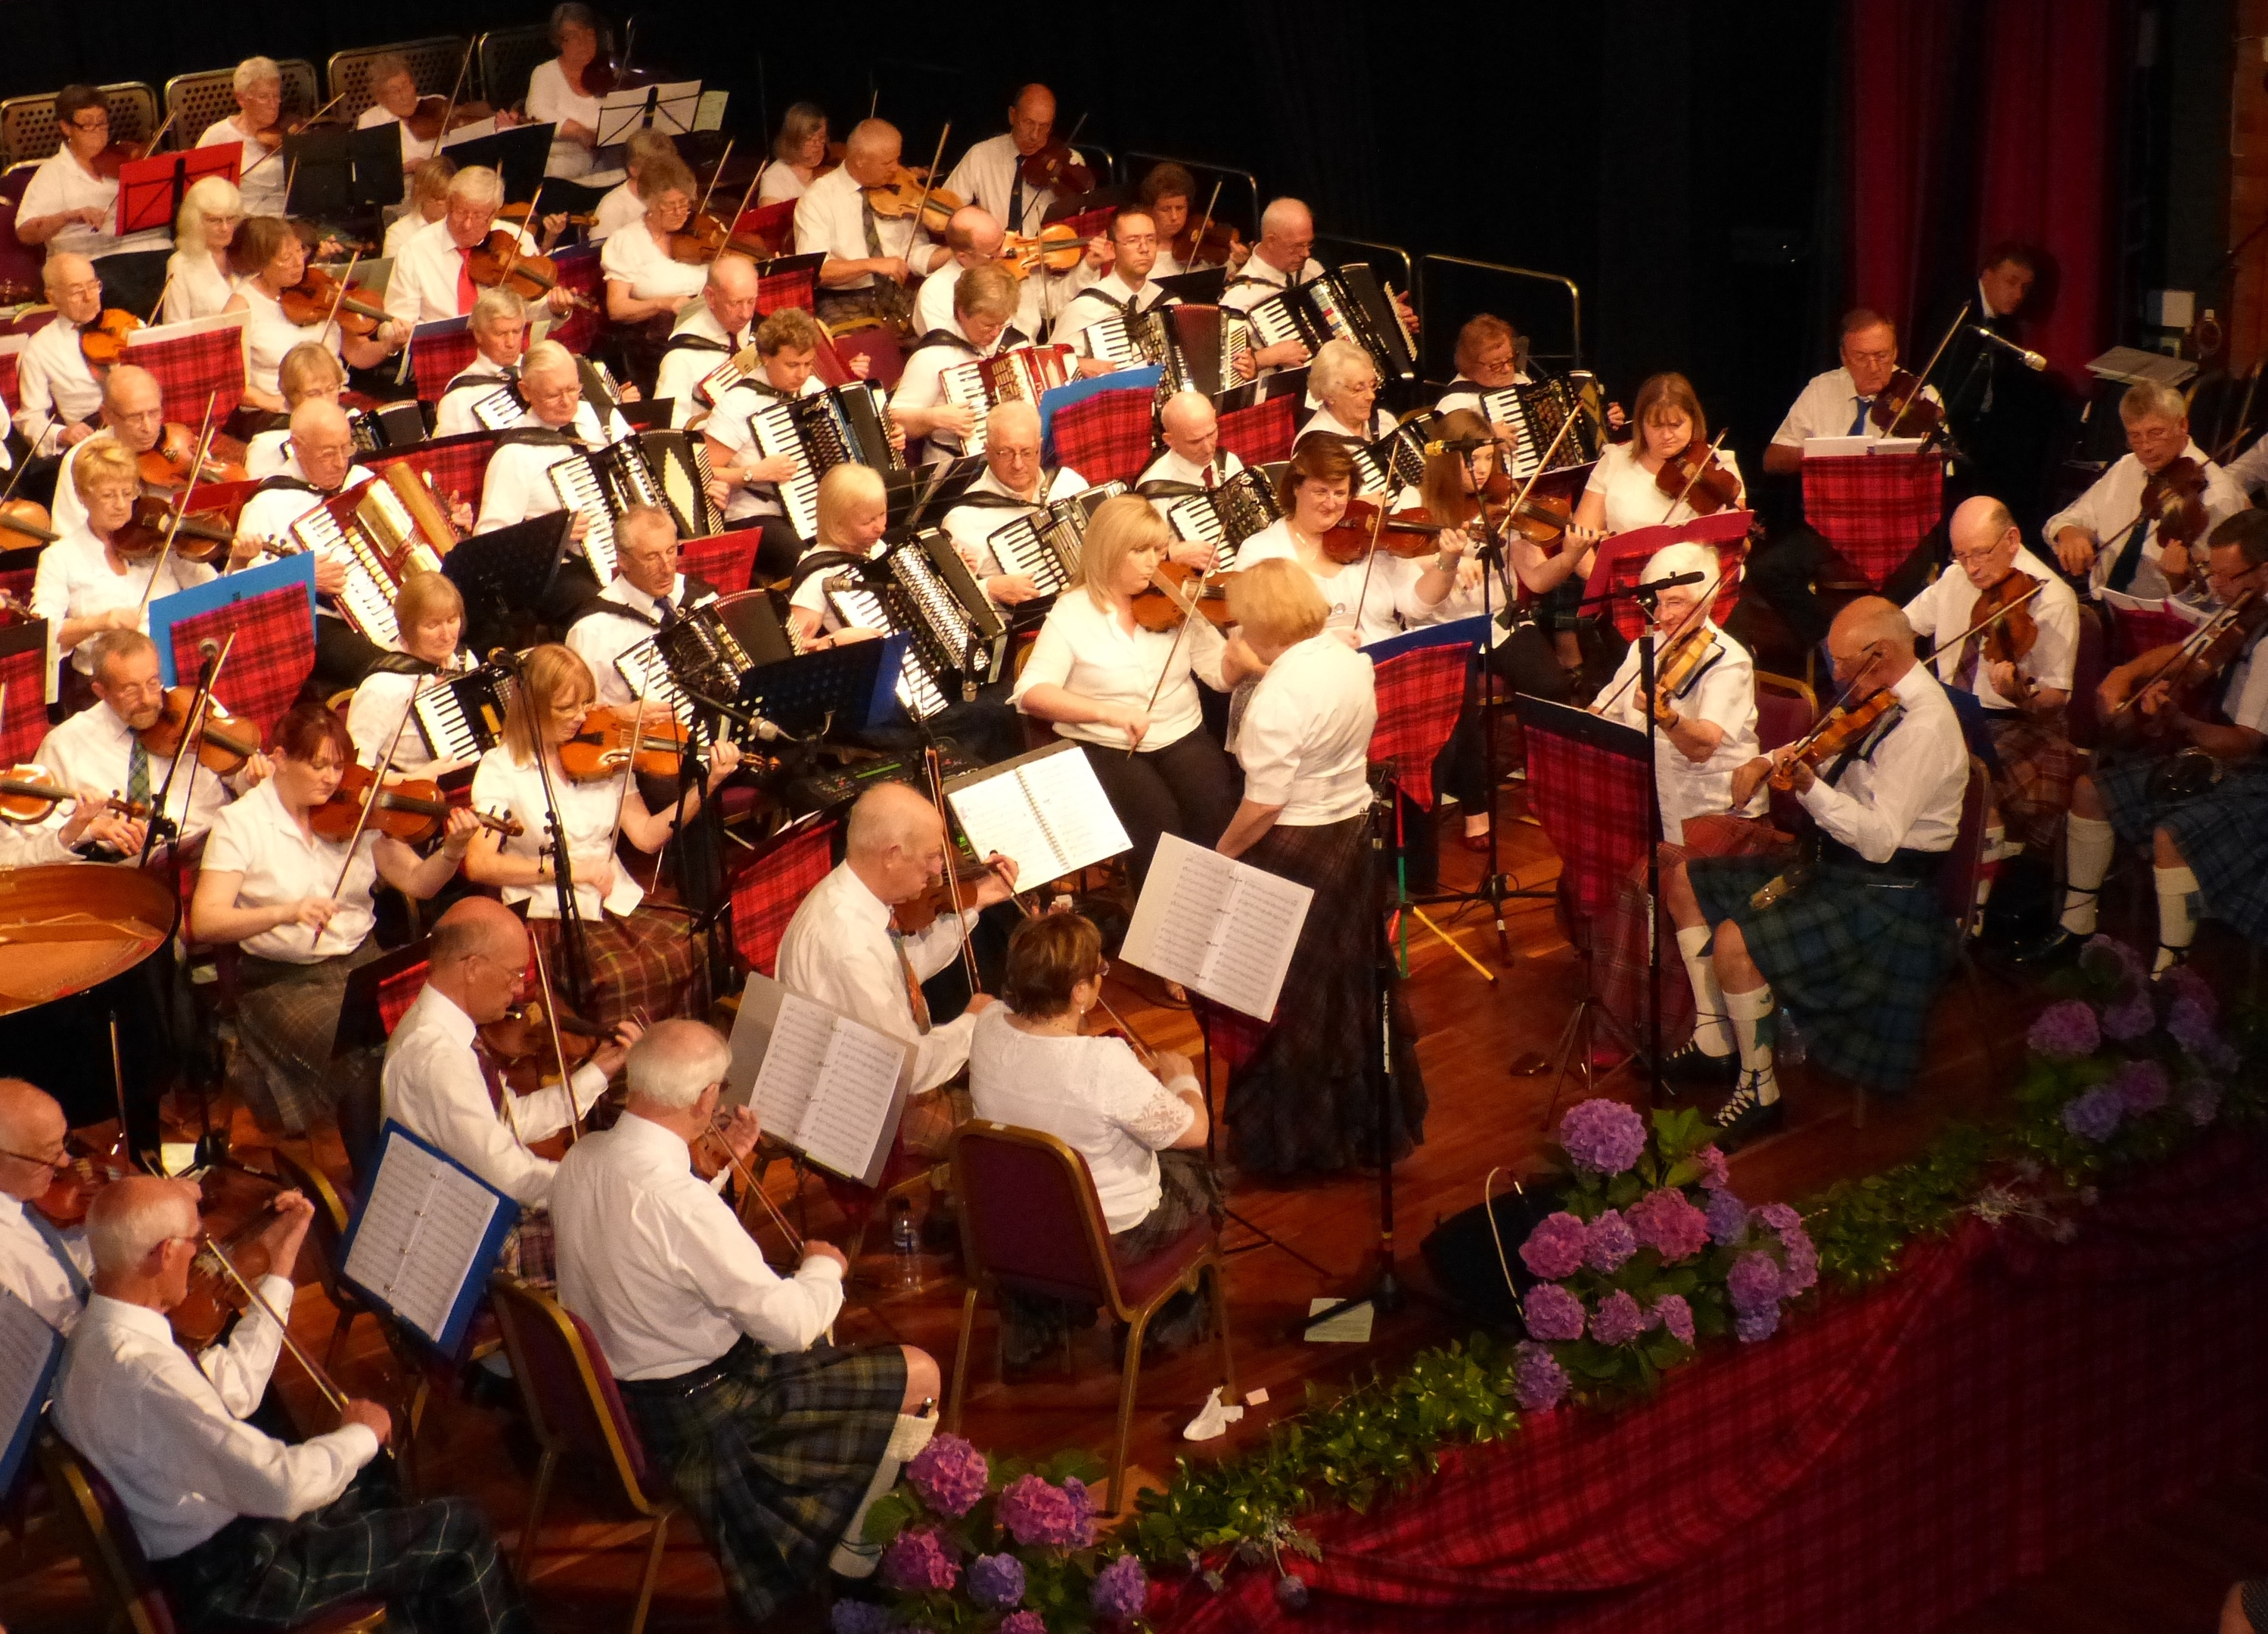 Nearly 100 people are expected to join the orchestra in Elgin Town Hall for the performance.